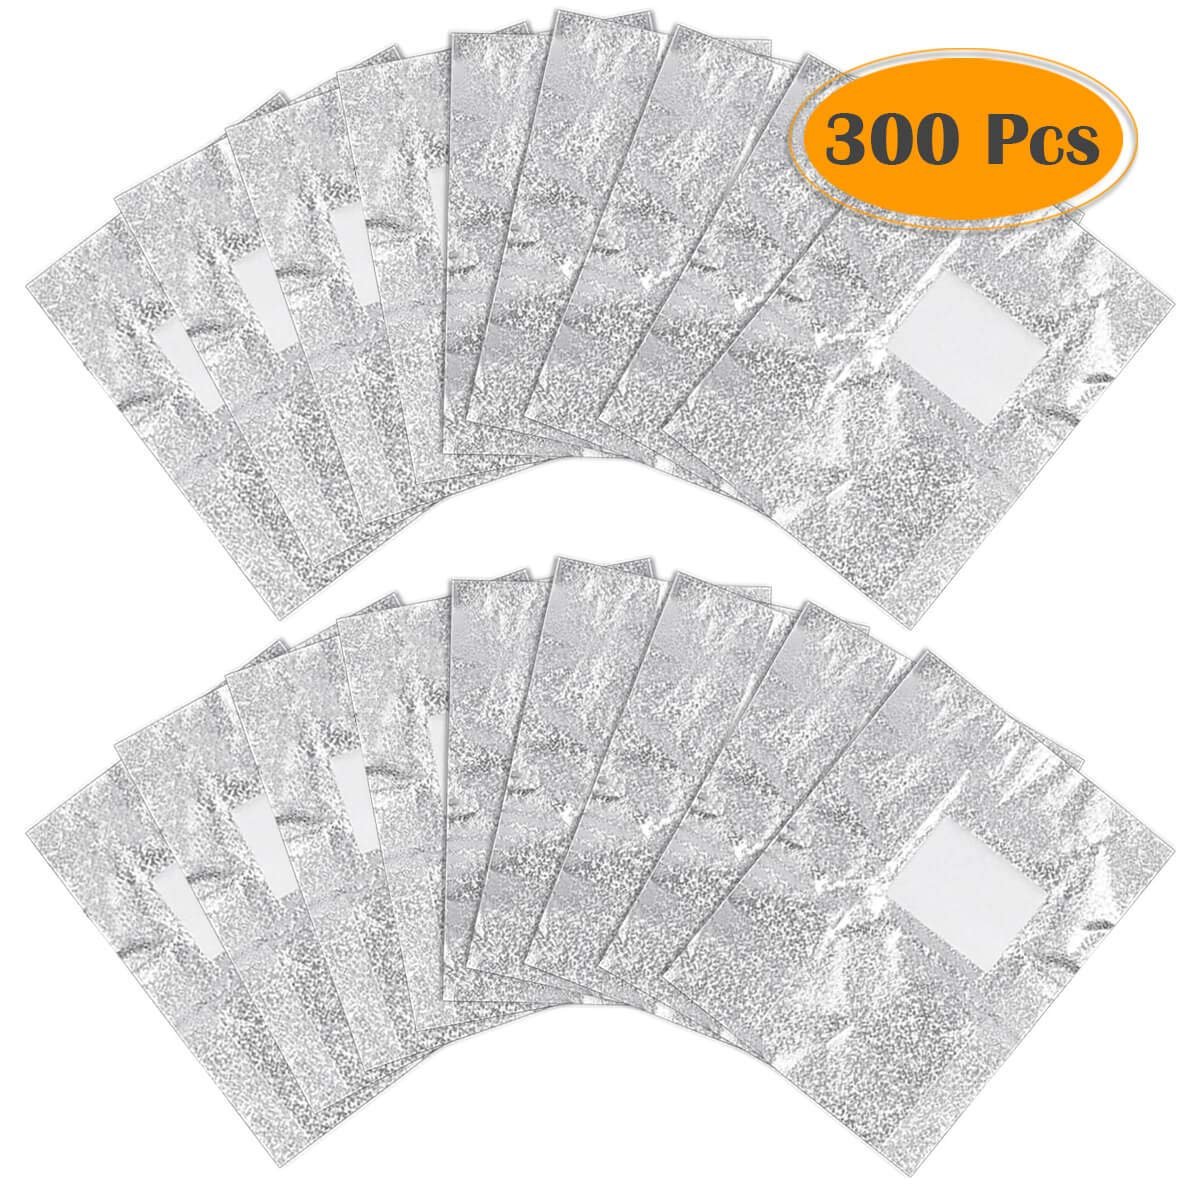 Anezus 300pcs Gel Nail Polish Remover Glitter Soak Off Foil Nail Wraps with Cotton Pad for Gel Removal by anezus